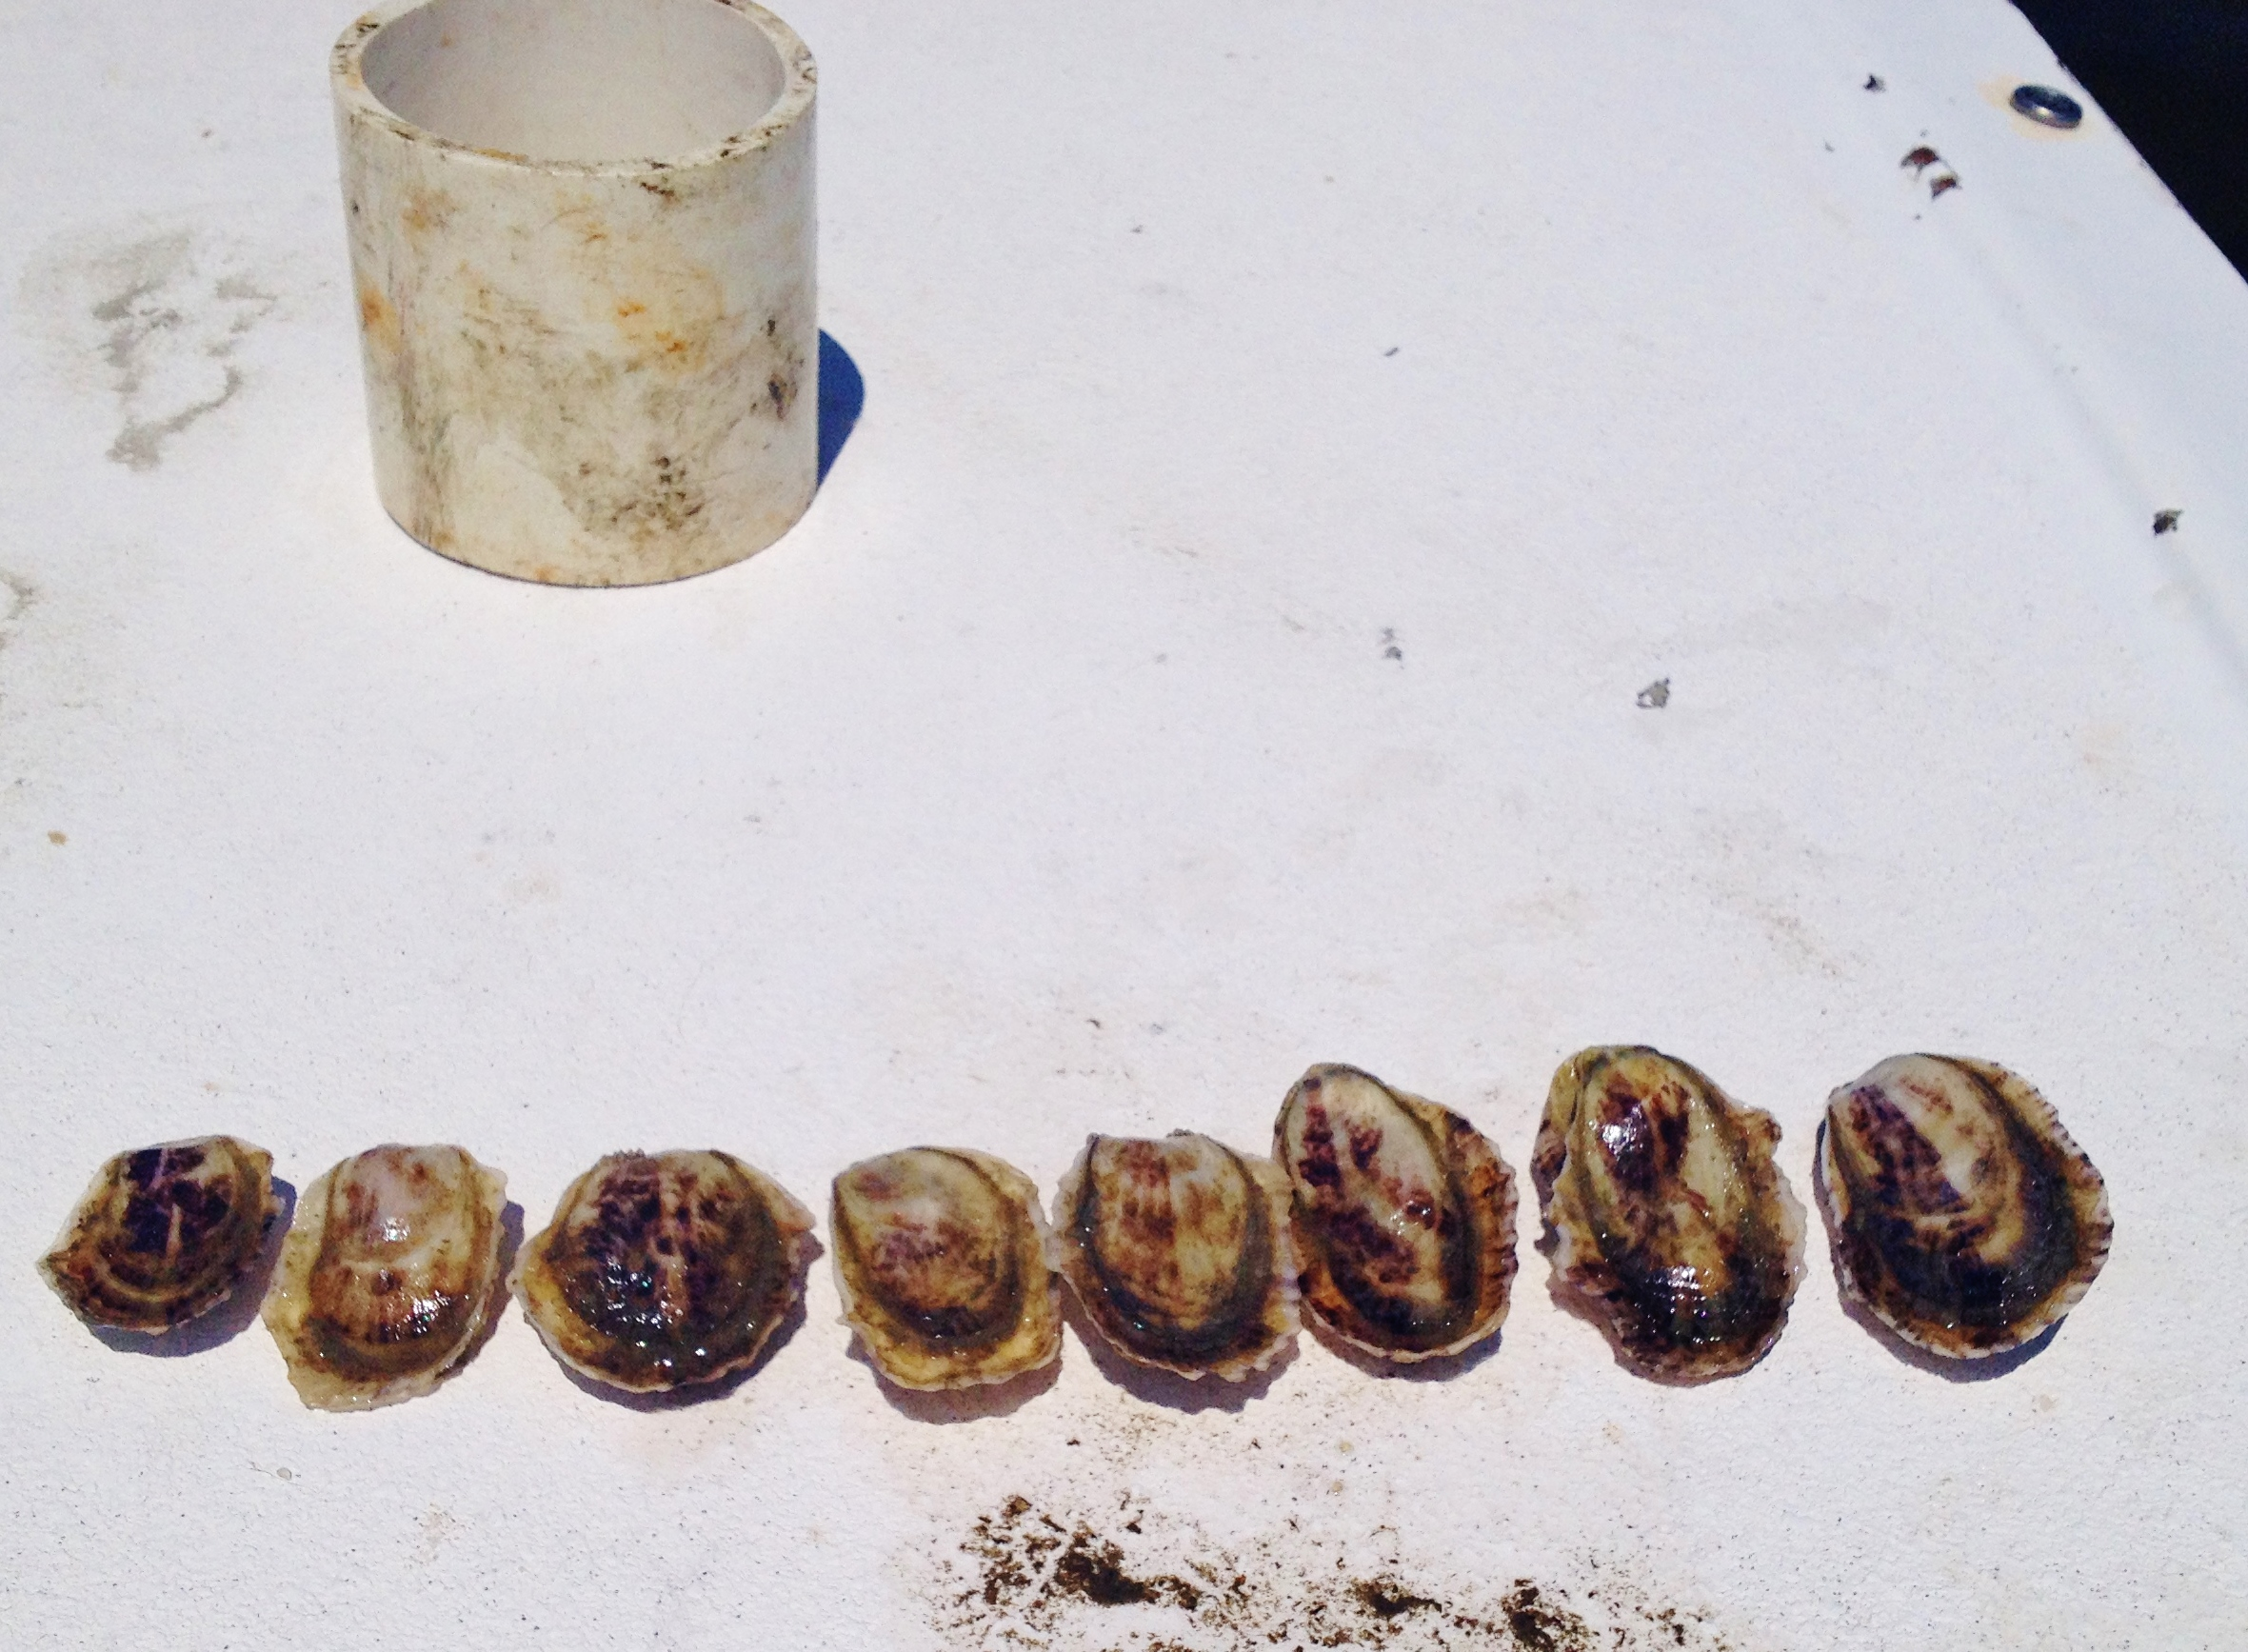 11 month old oysters. While they are all the same age, oysters will grow at different rates from one another.